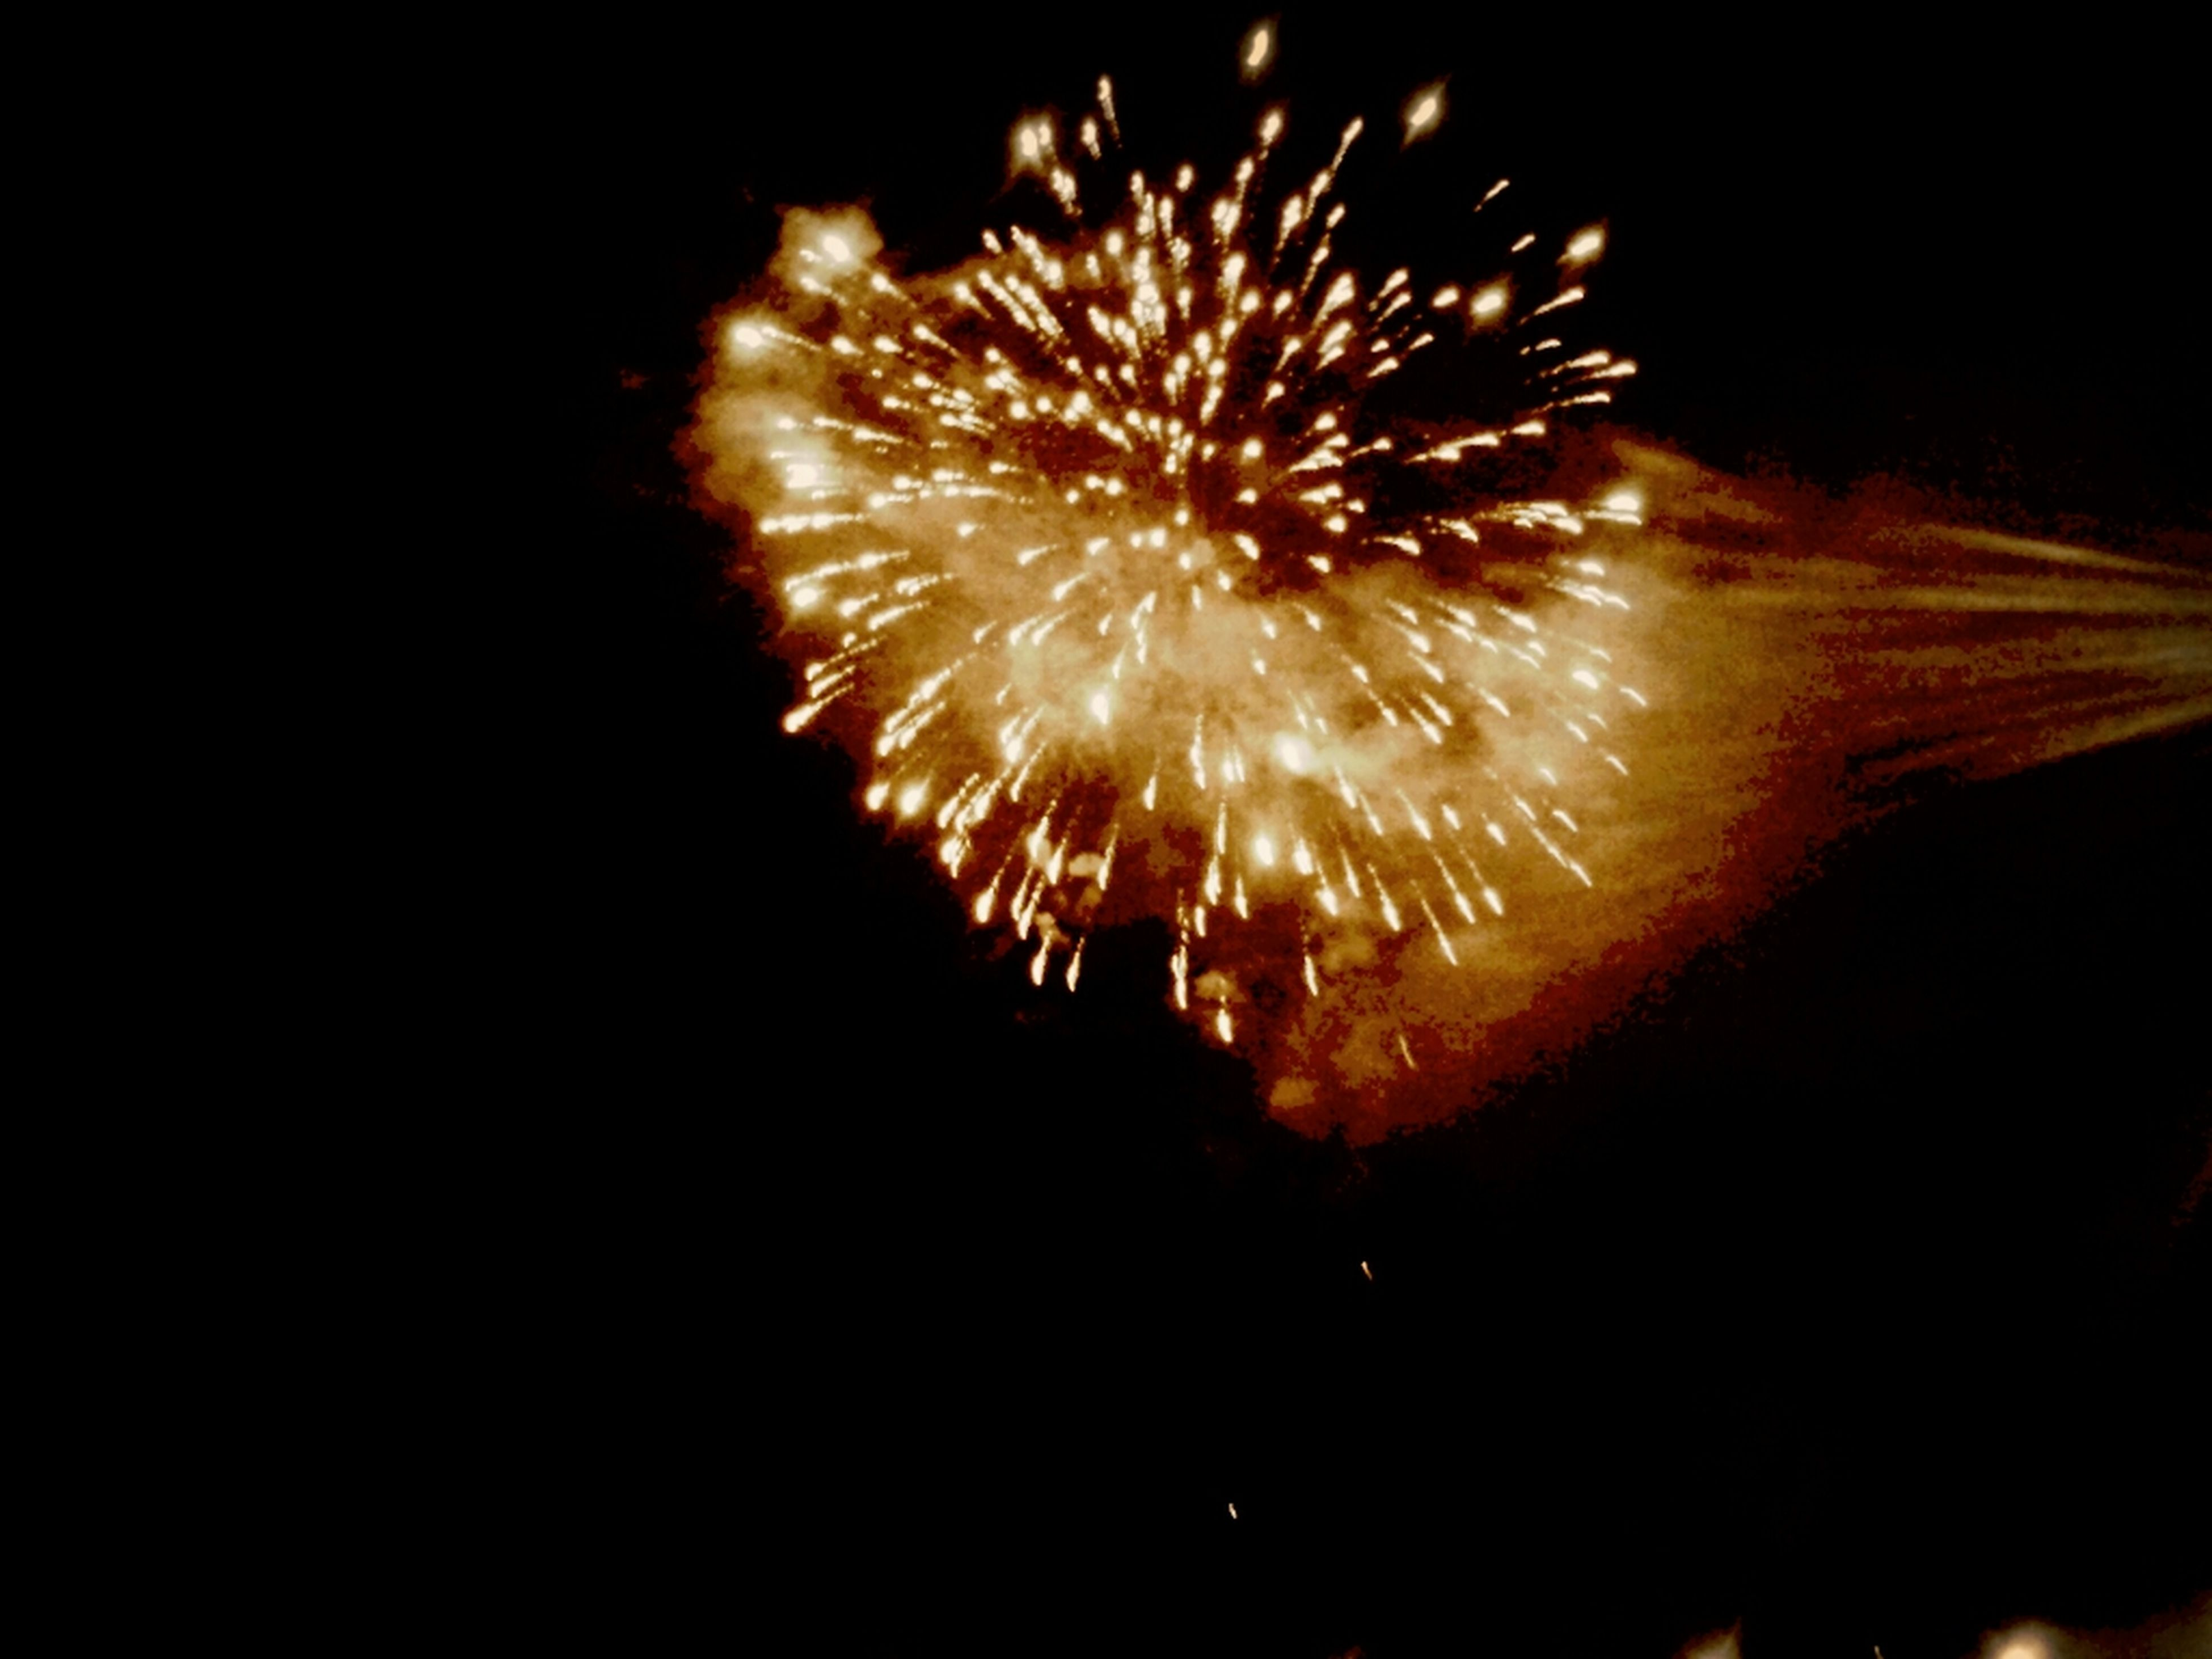 night, firework display, exploding, long exposure, illuminated, celebration, glowing, firework - man made object, motion, event, arts culture and entertainment, low angle view, sparks, firework, blurred motion, sky, entertainment, fire - natural phenomenon, celebration event, dark